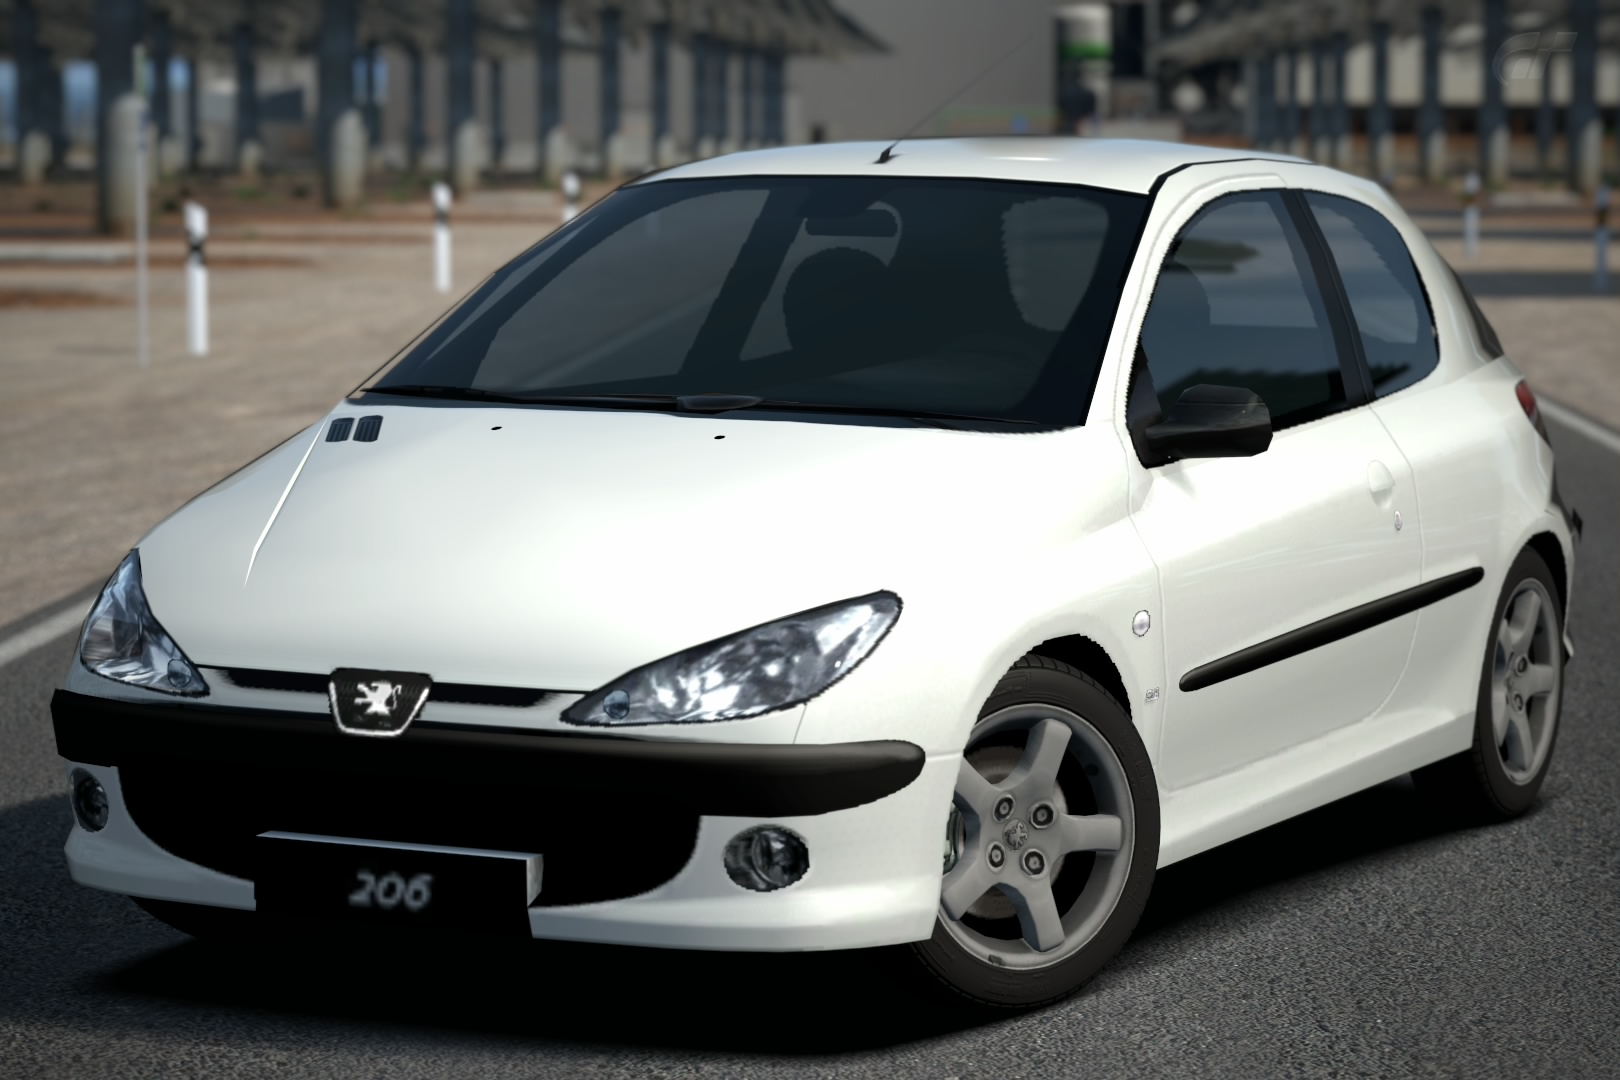 peugeot 206 s16 39 99 gran turismo wiki fandom powered by wikia. Black Bedroom Furniture Sets. Home Design Ideas